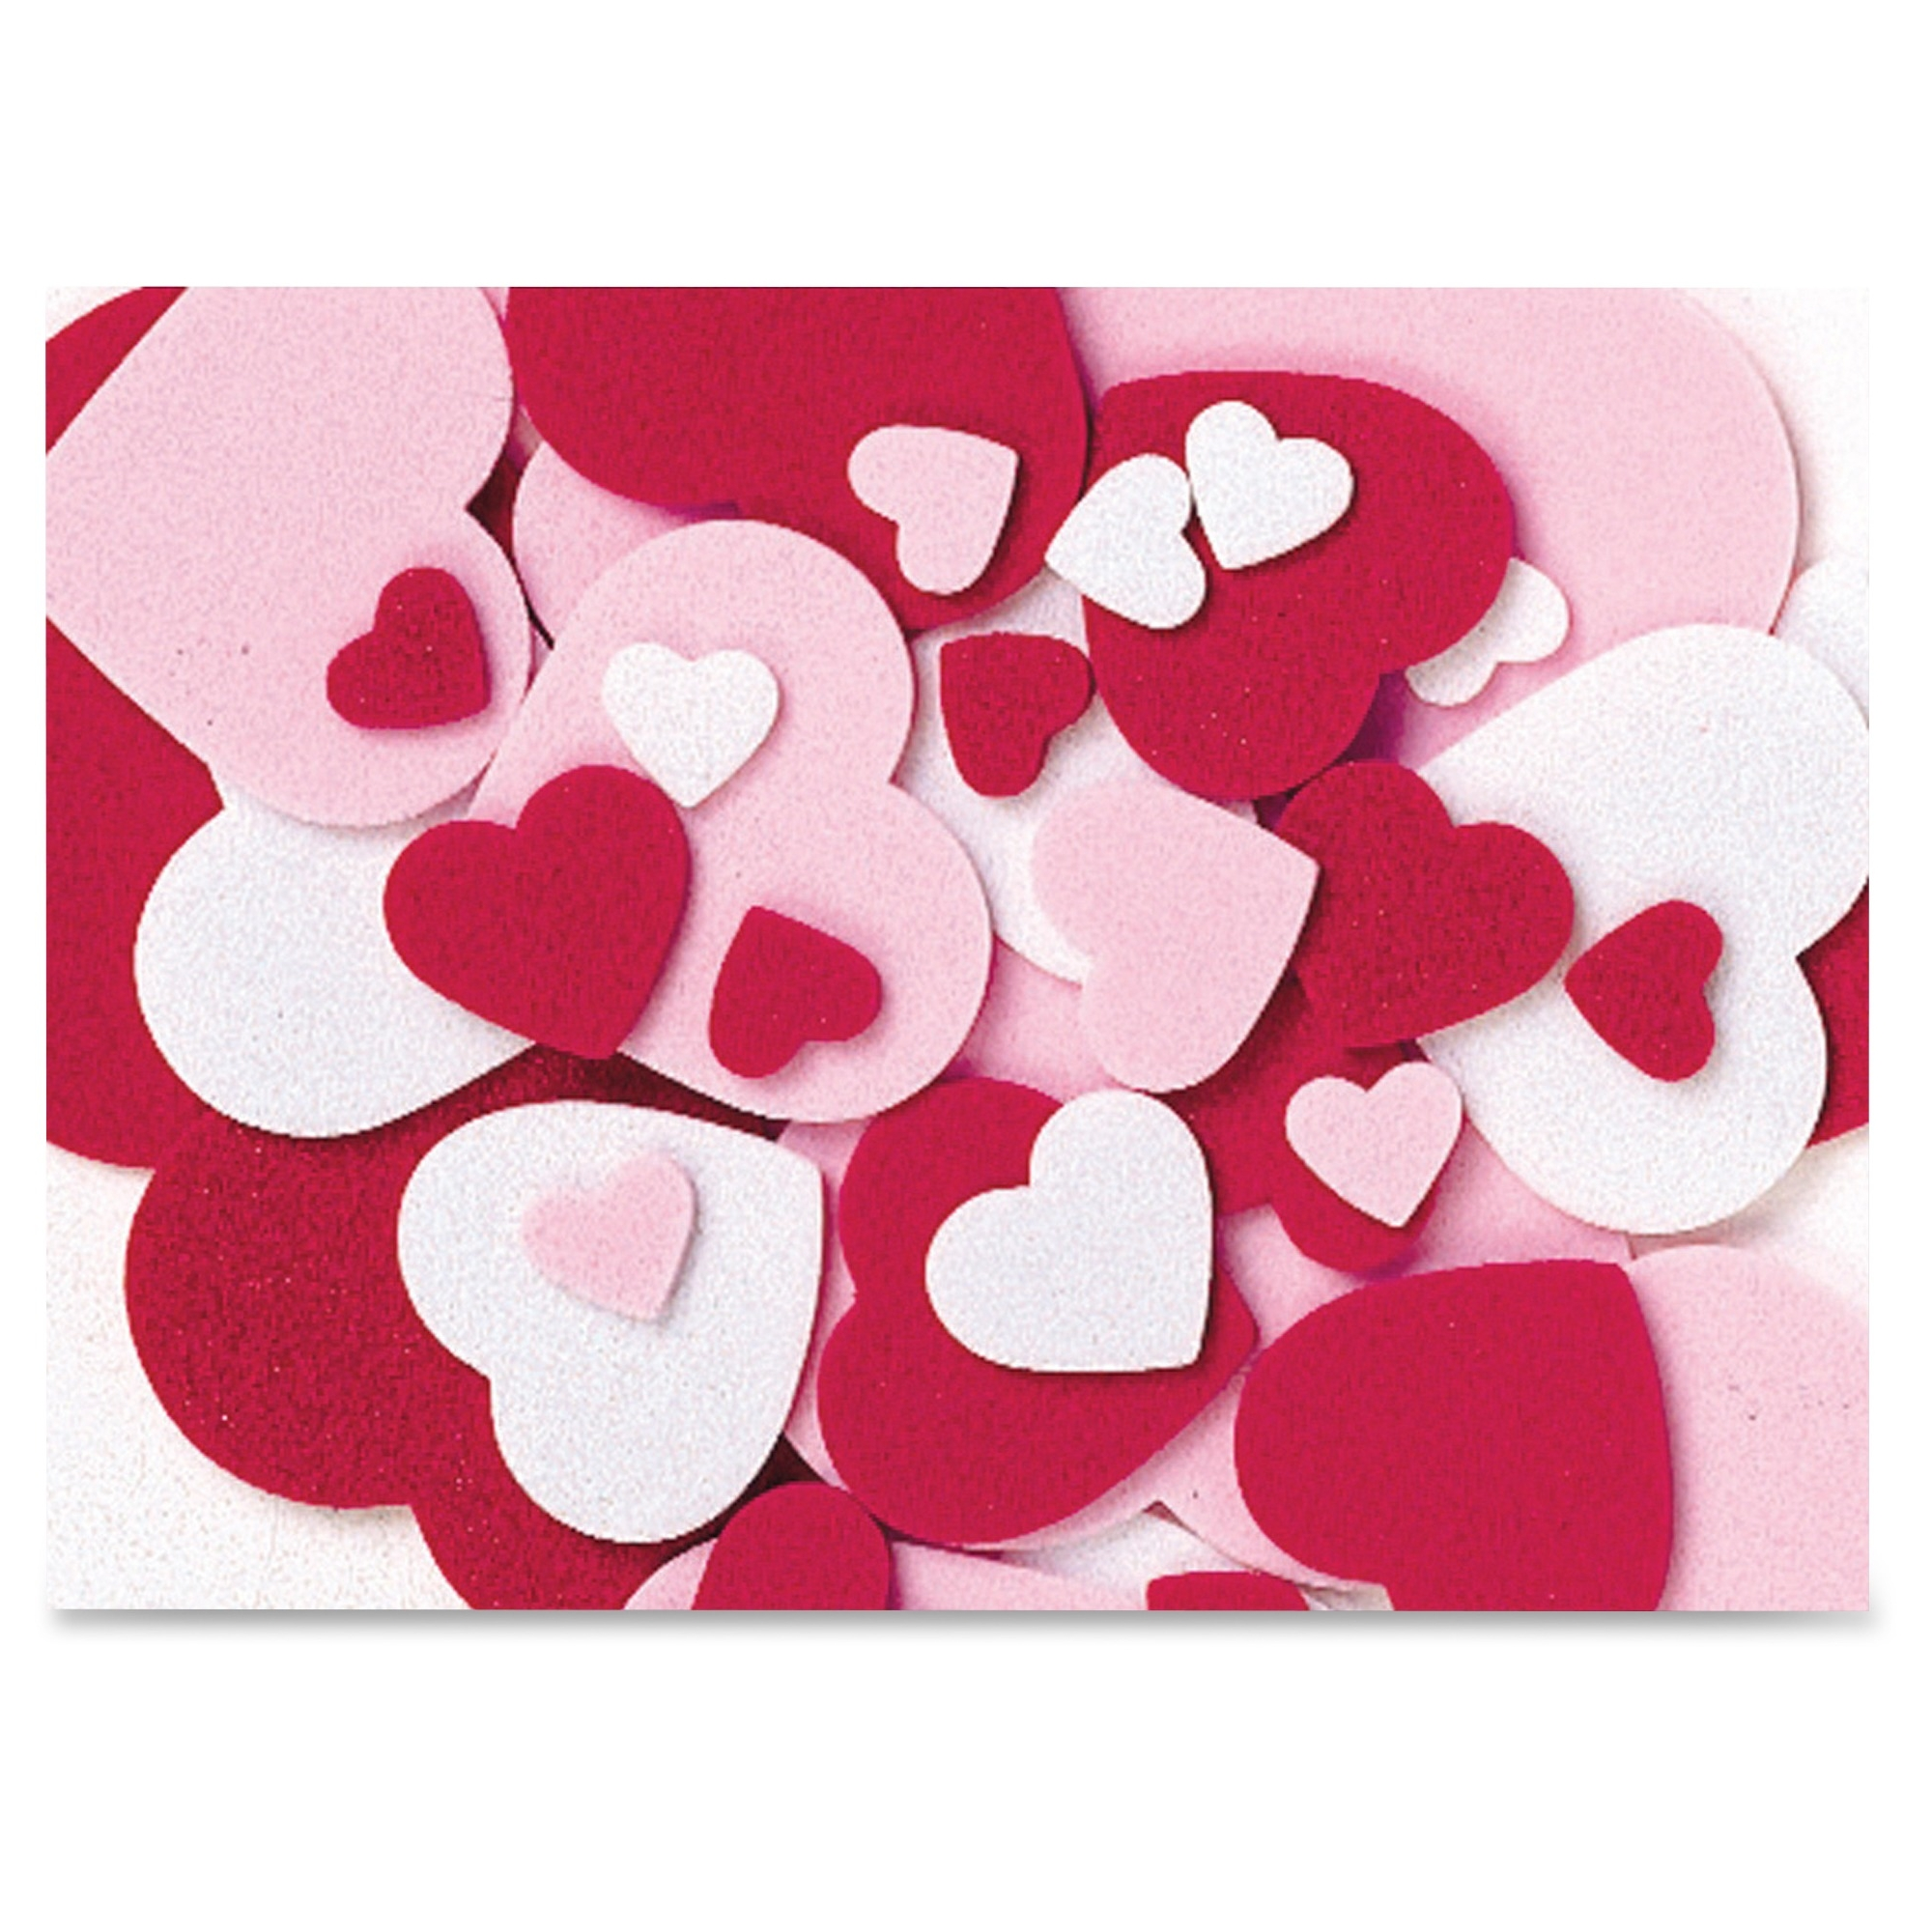 Wonderfoam Peel And Stick Hearts - Valentine's Day, Birthday Theme/subject - 264 Heart - Self-adhesive - Durable, Easy Peel - Red, Pink, White - Foam - 264 / Set (ckc-4316)